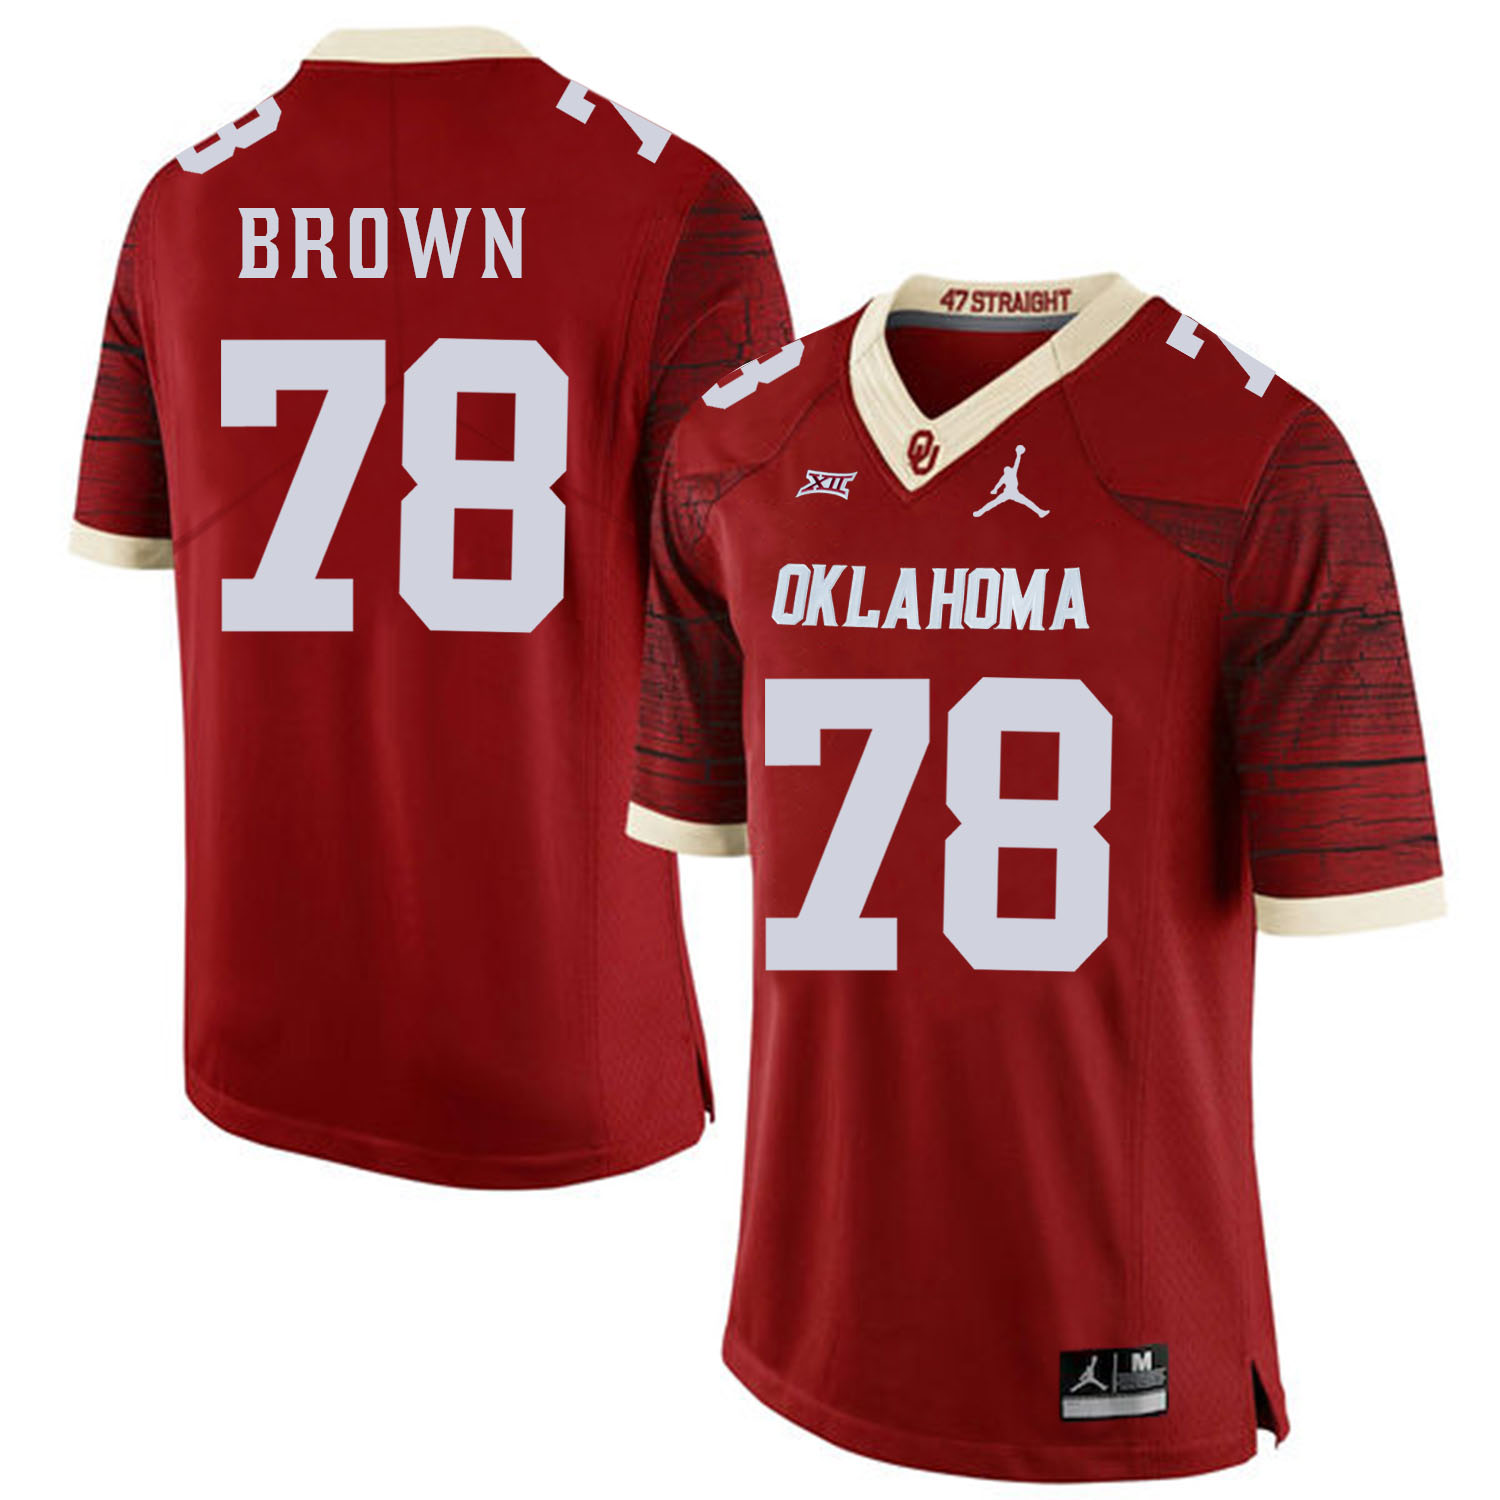 Oklahoma Sooners 78 Orlando Brown Red 47 Game Winning Streak College Football Jersey